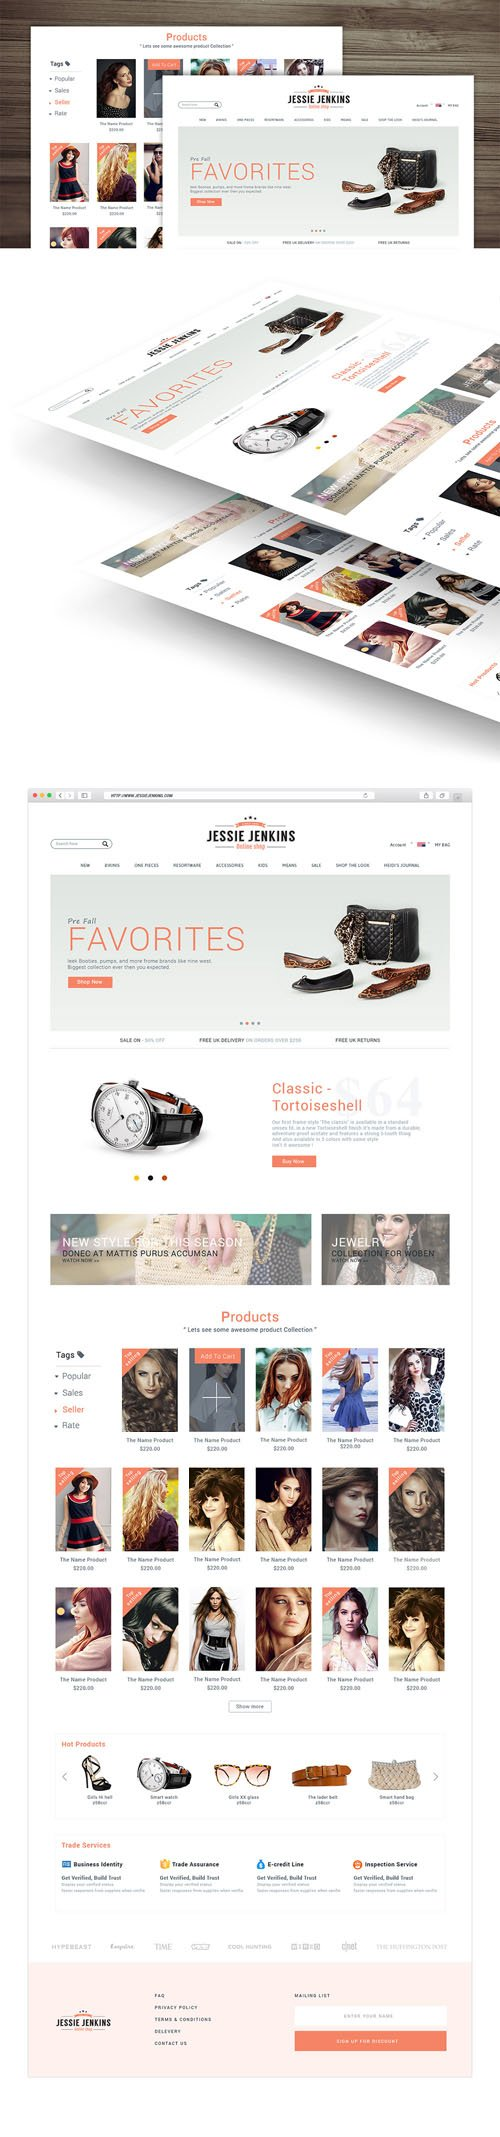 Modern Premium eCommerce Website PSD Template